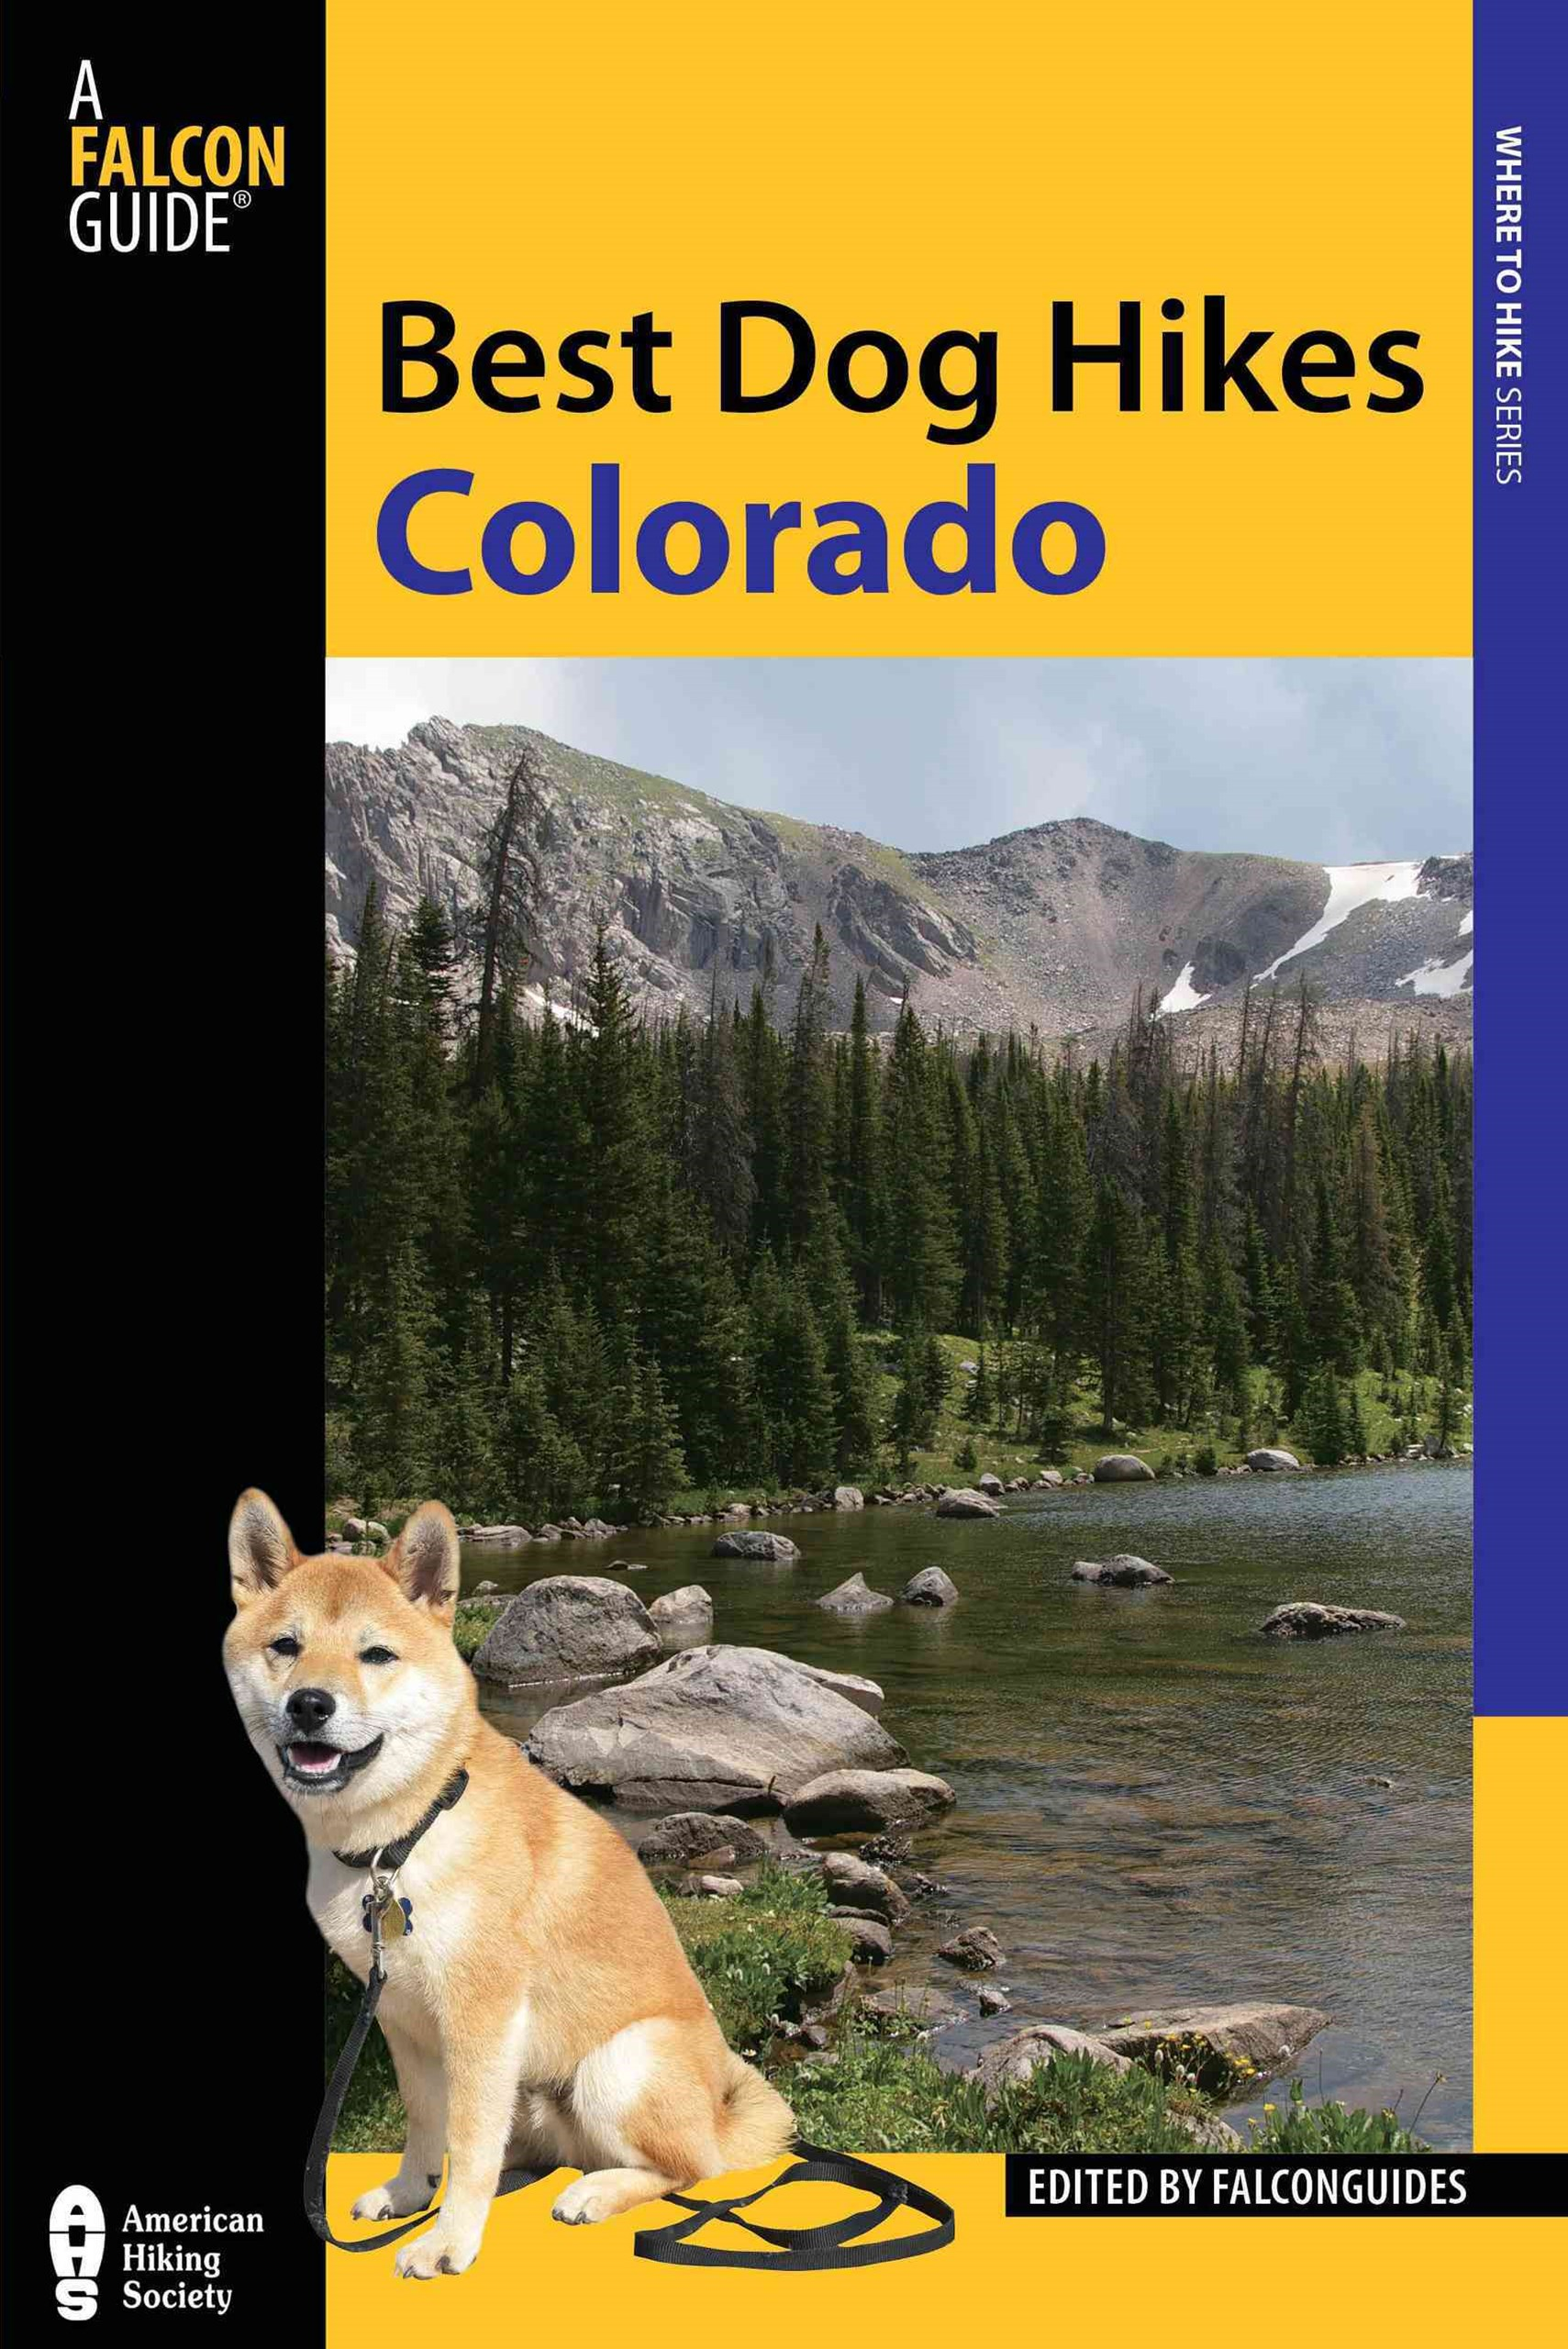 Best Dog Hikes Colorado